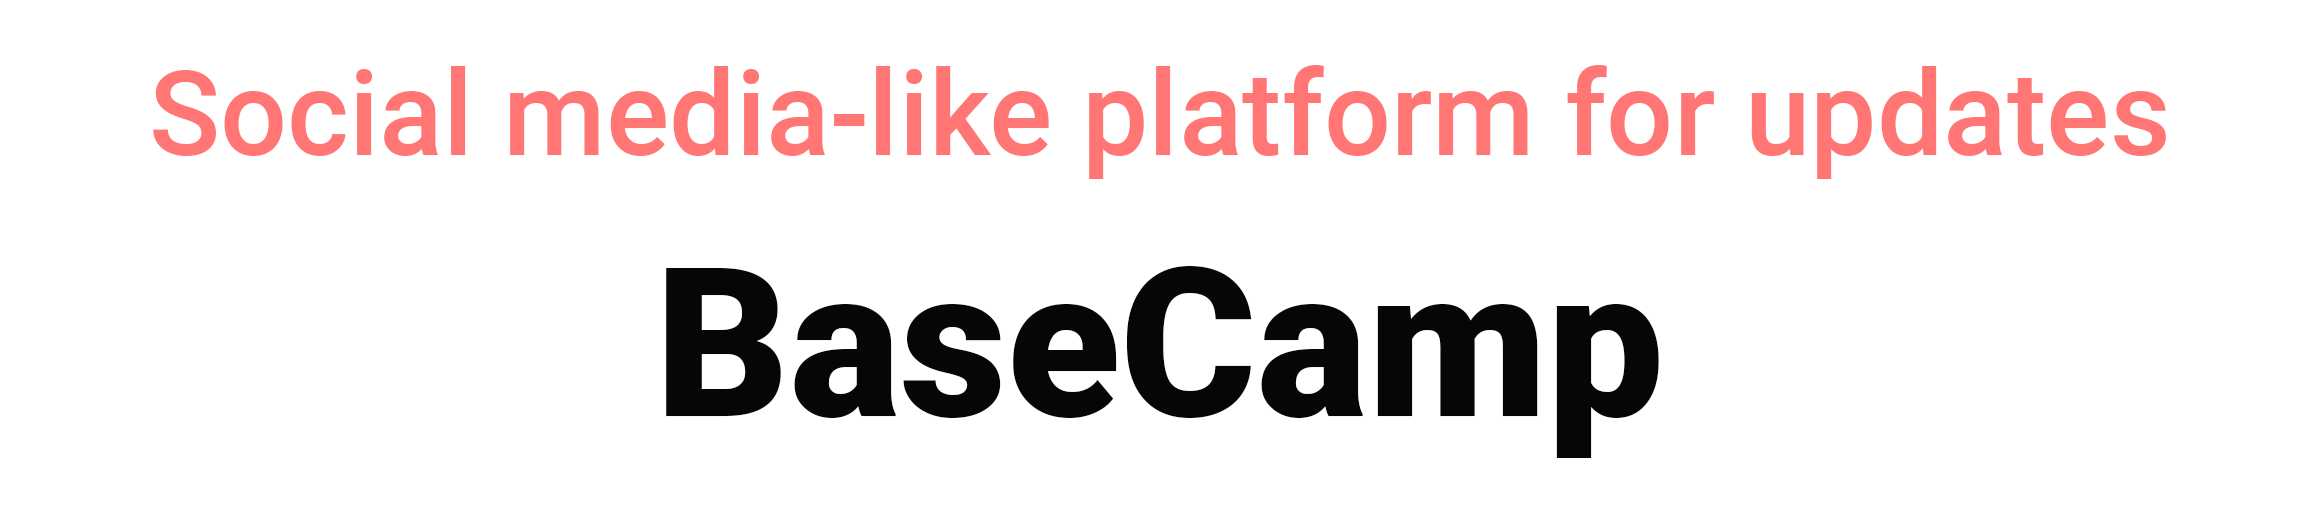 Social media-like platform for updates BASECAMP team collaboration tools